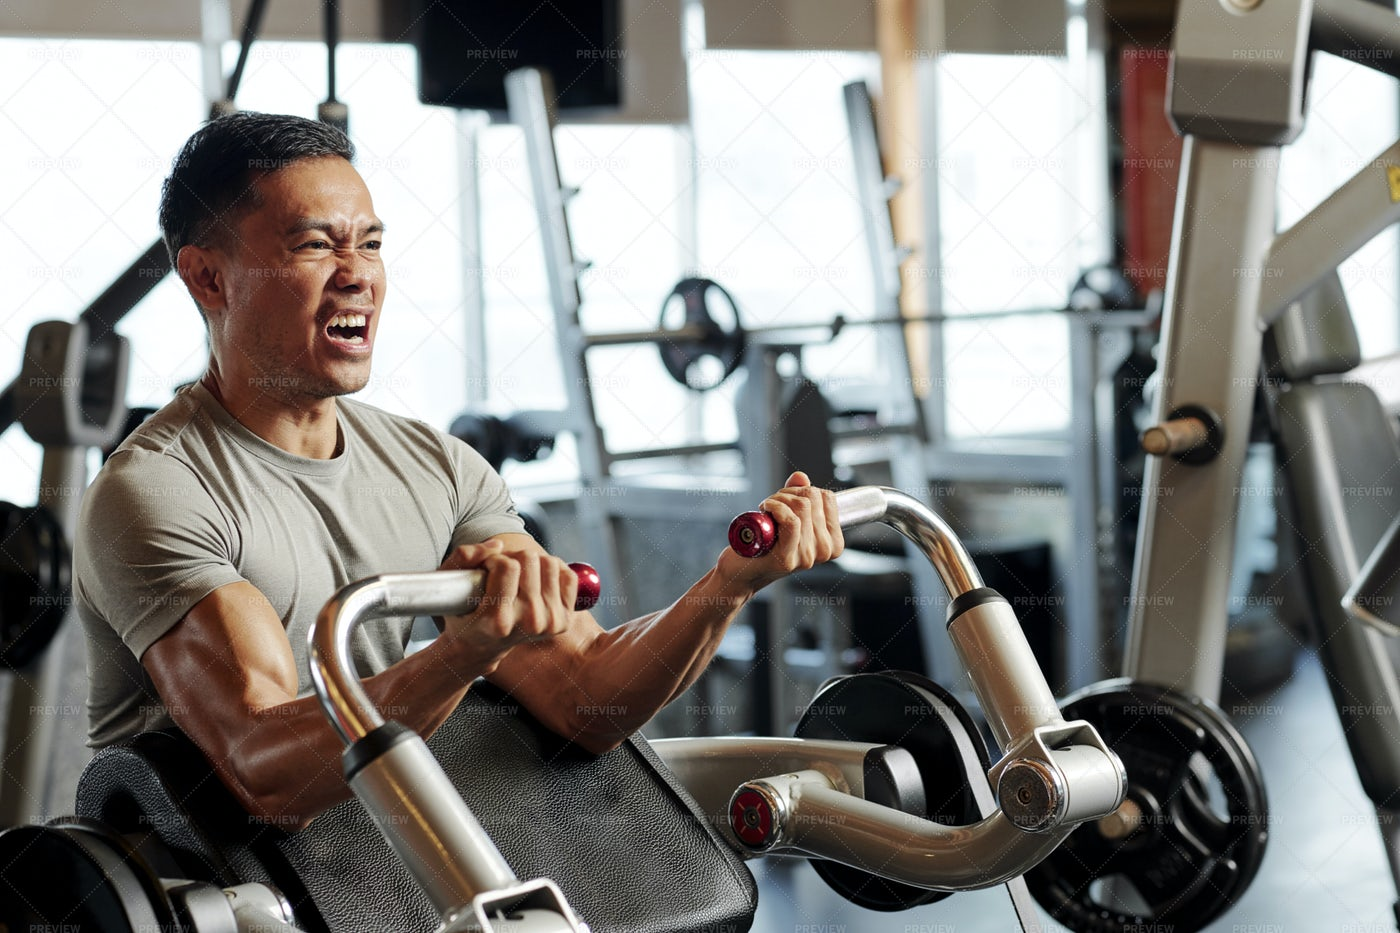 Sports Training In Fitness Gym: Stock Photos